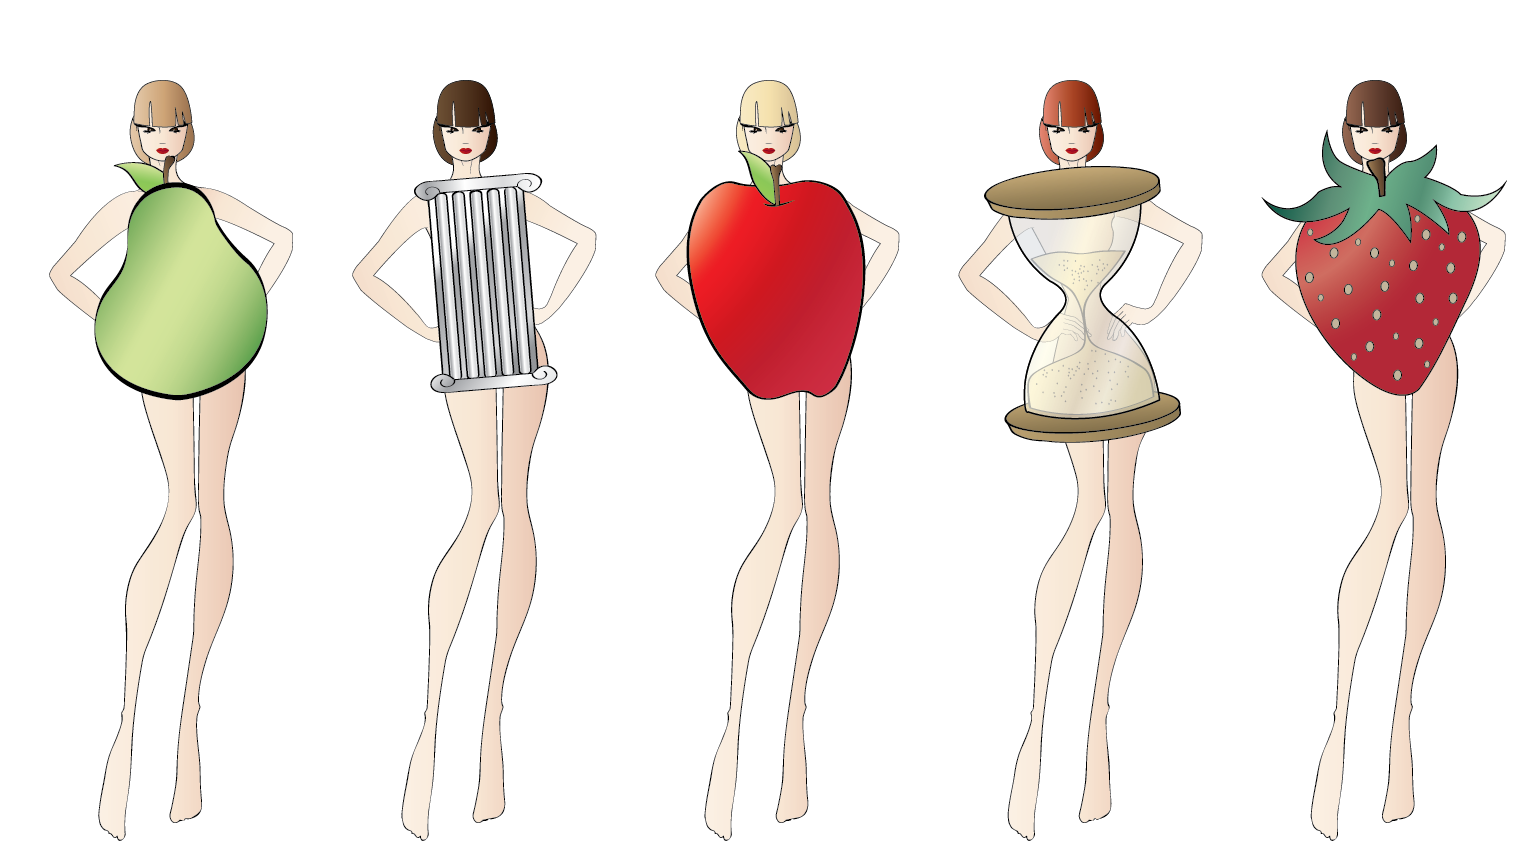 http://www.looksgoodonme.com/blog/2015/04/02/make-the-most-of-your-body-type/